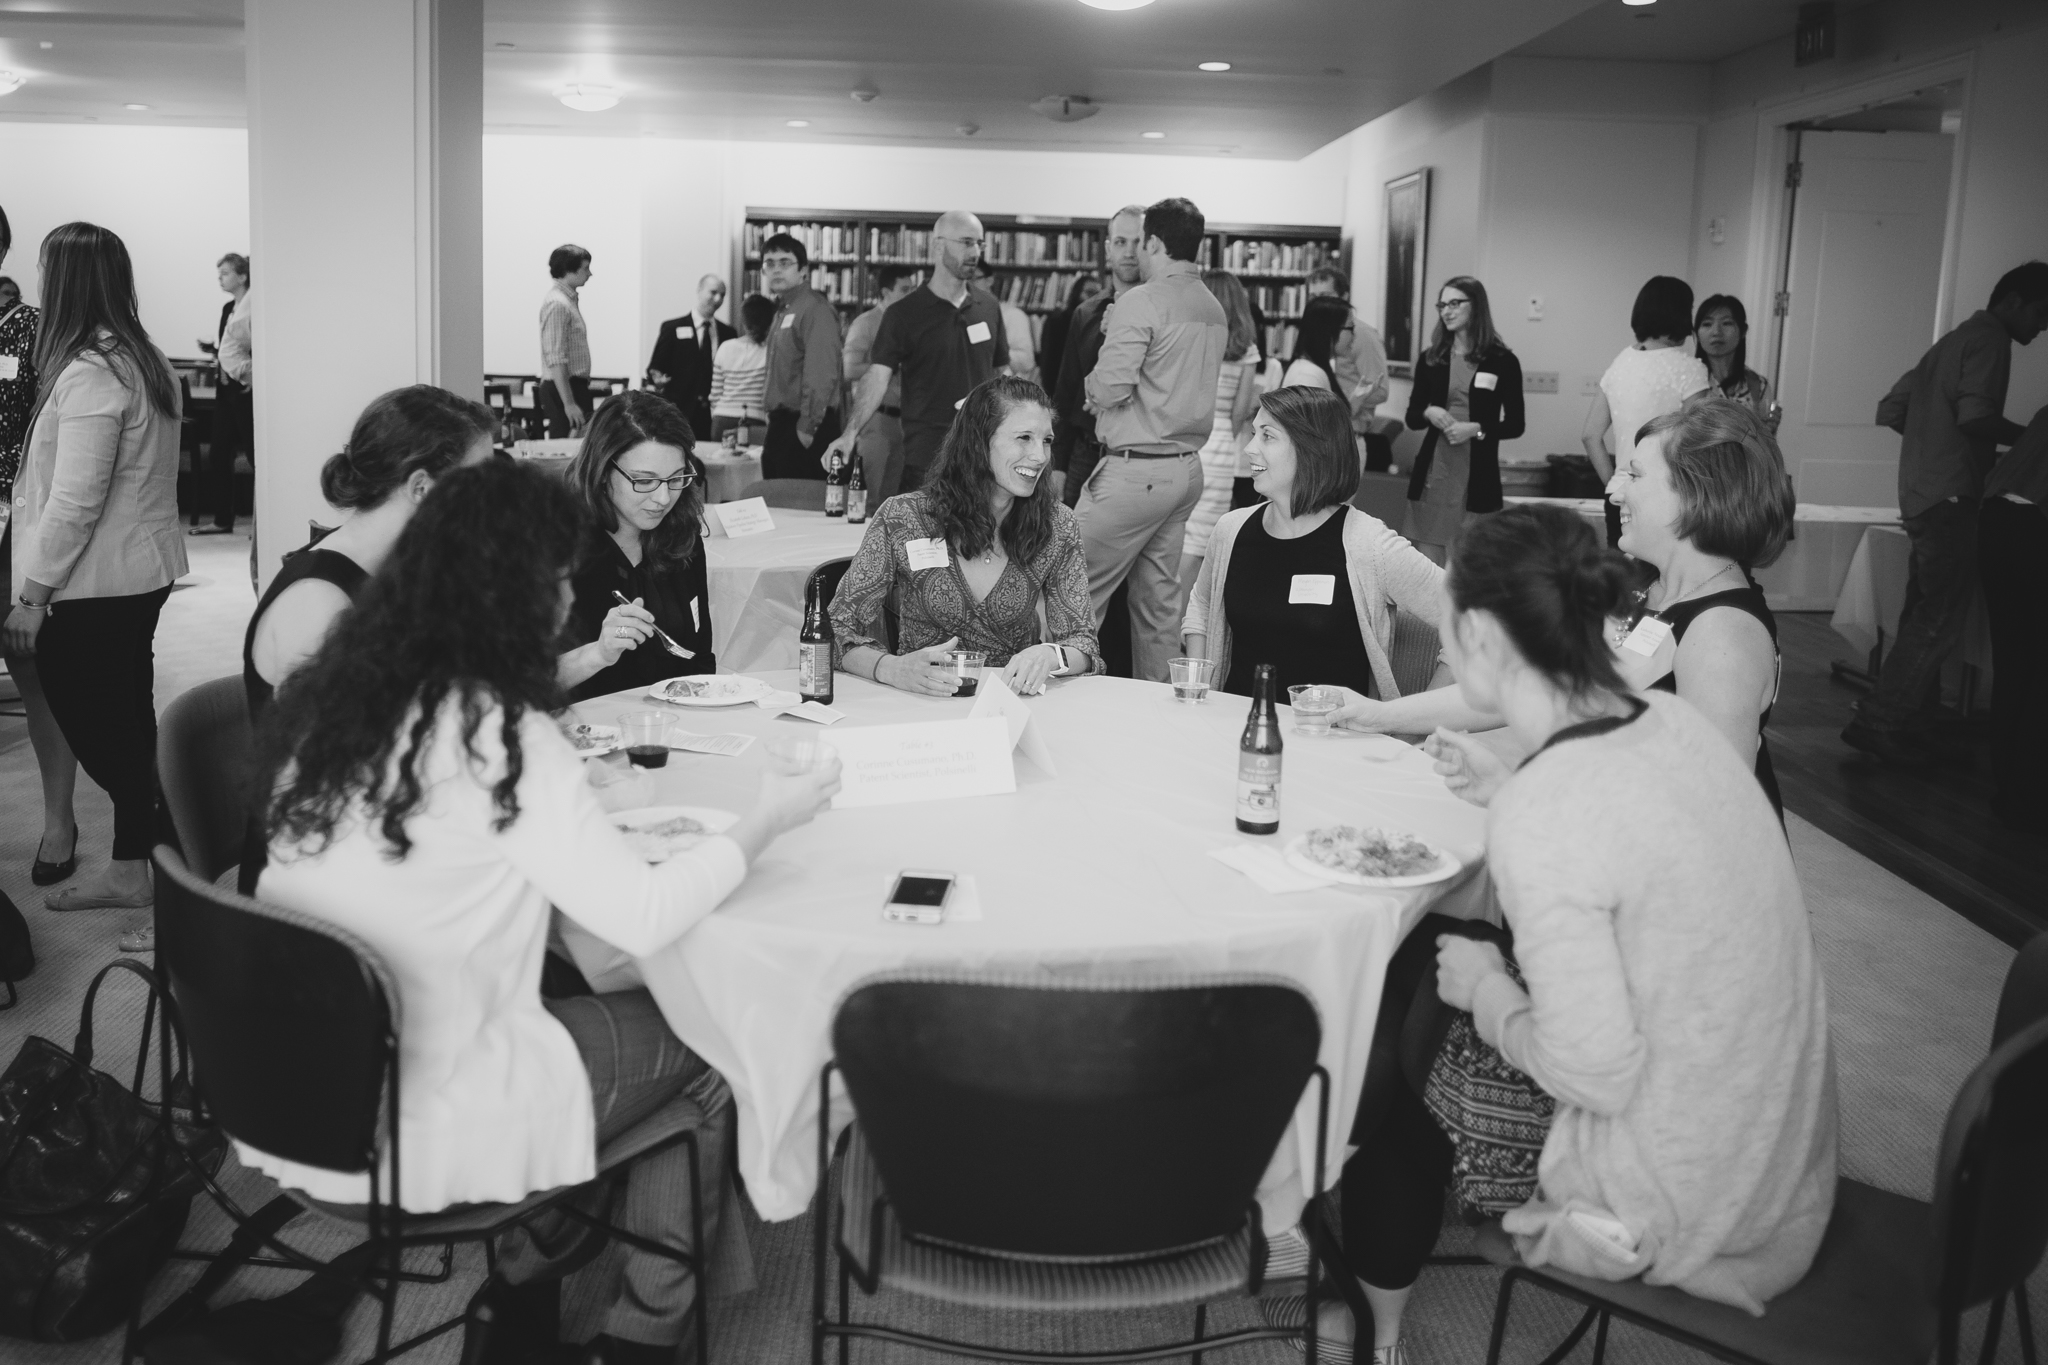 Students and invited guests mingle at the Early Career Transitions Symposium at Washington University in St. Louis the evening of June 3, 2015.